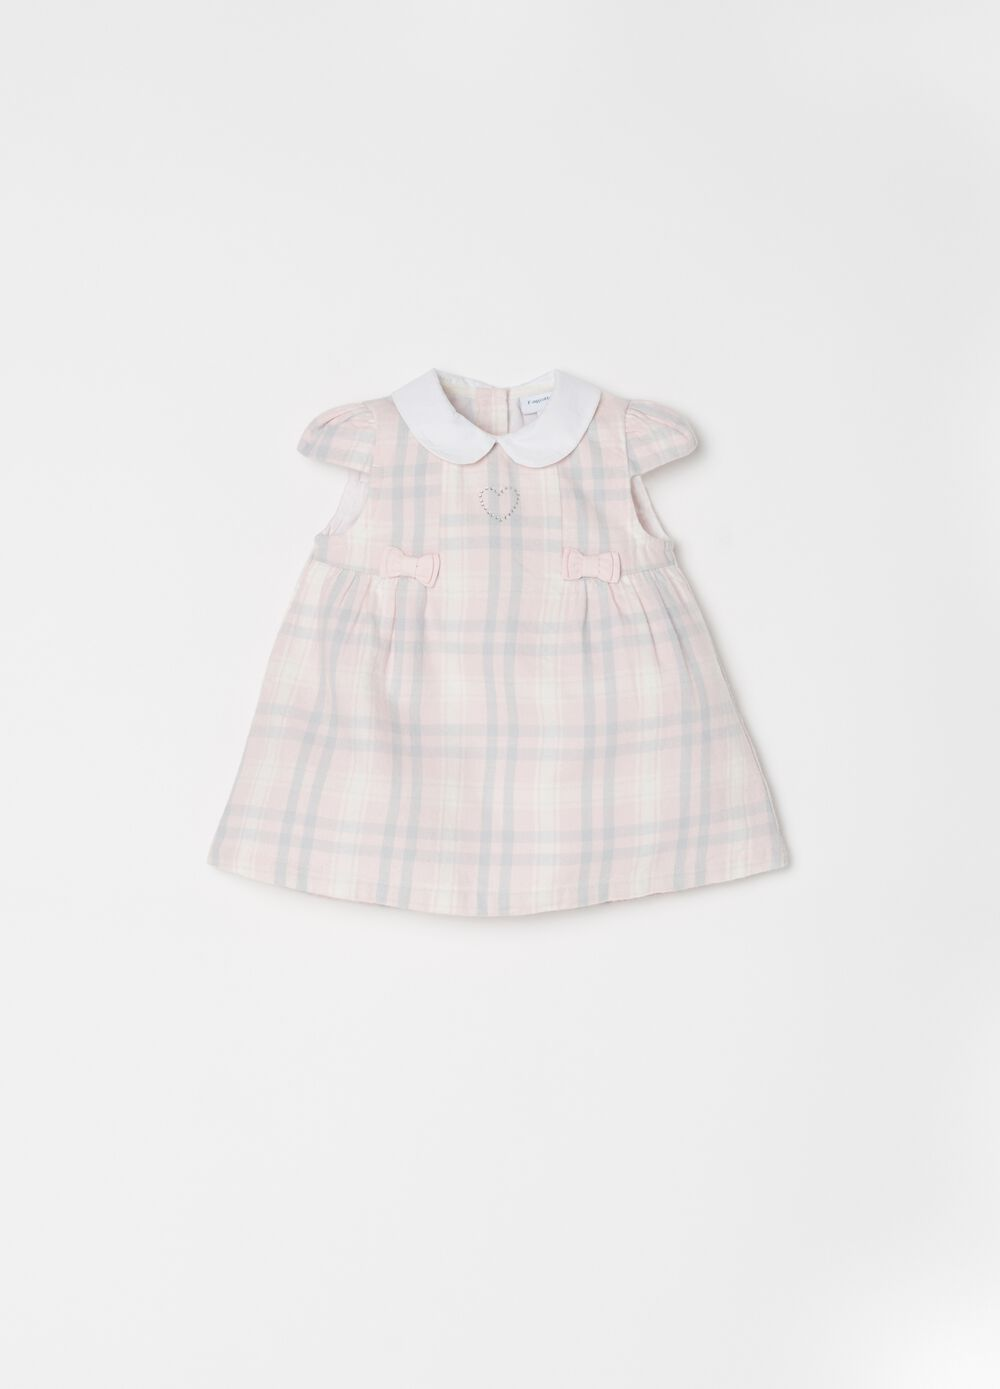 Dress with bows and check pattern